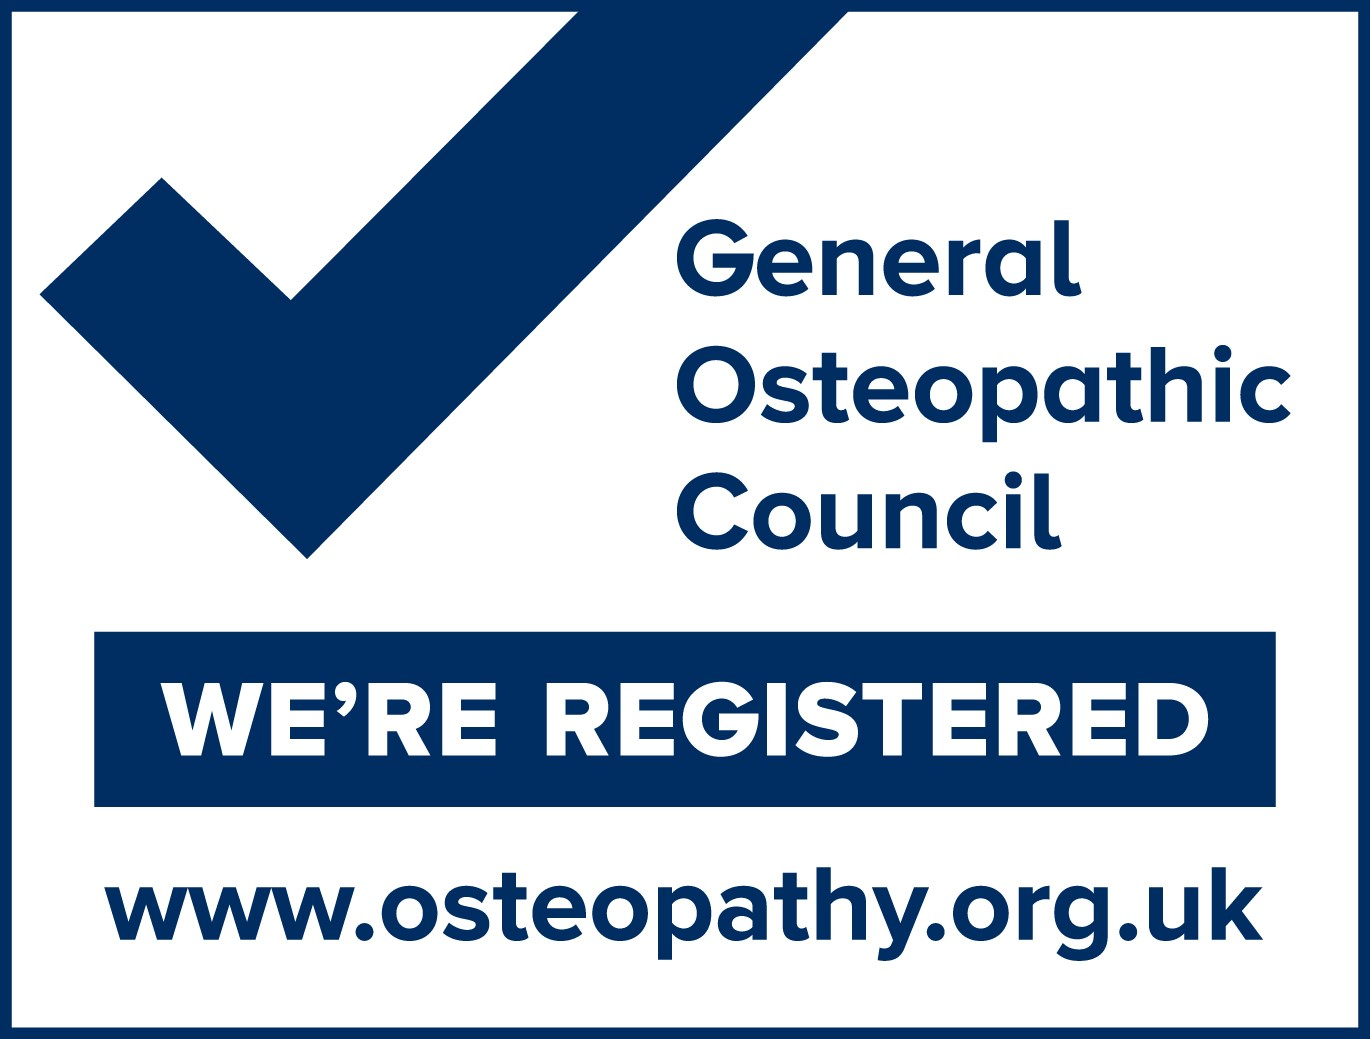 General Osteopath Council registeration